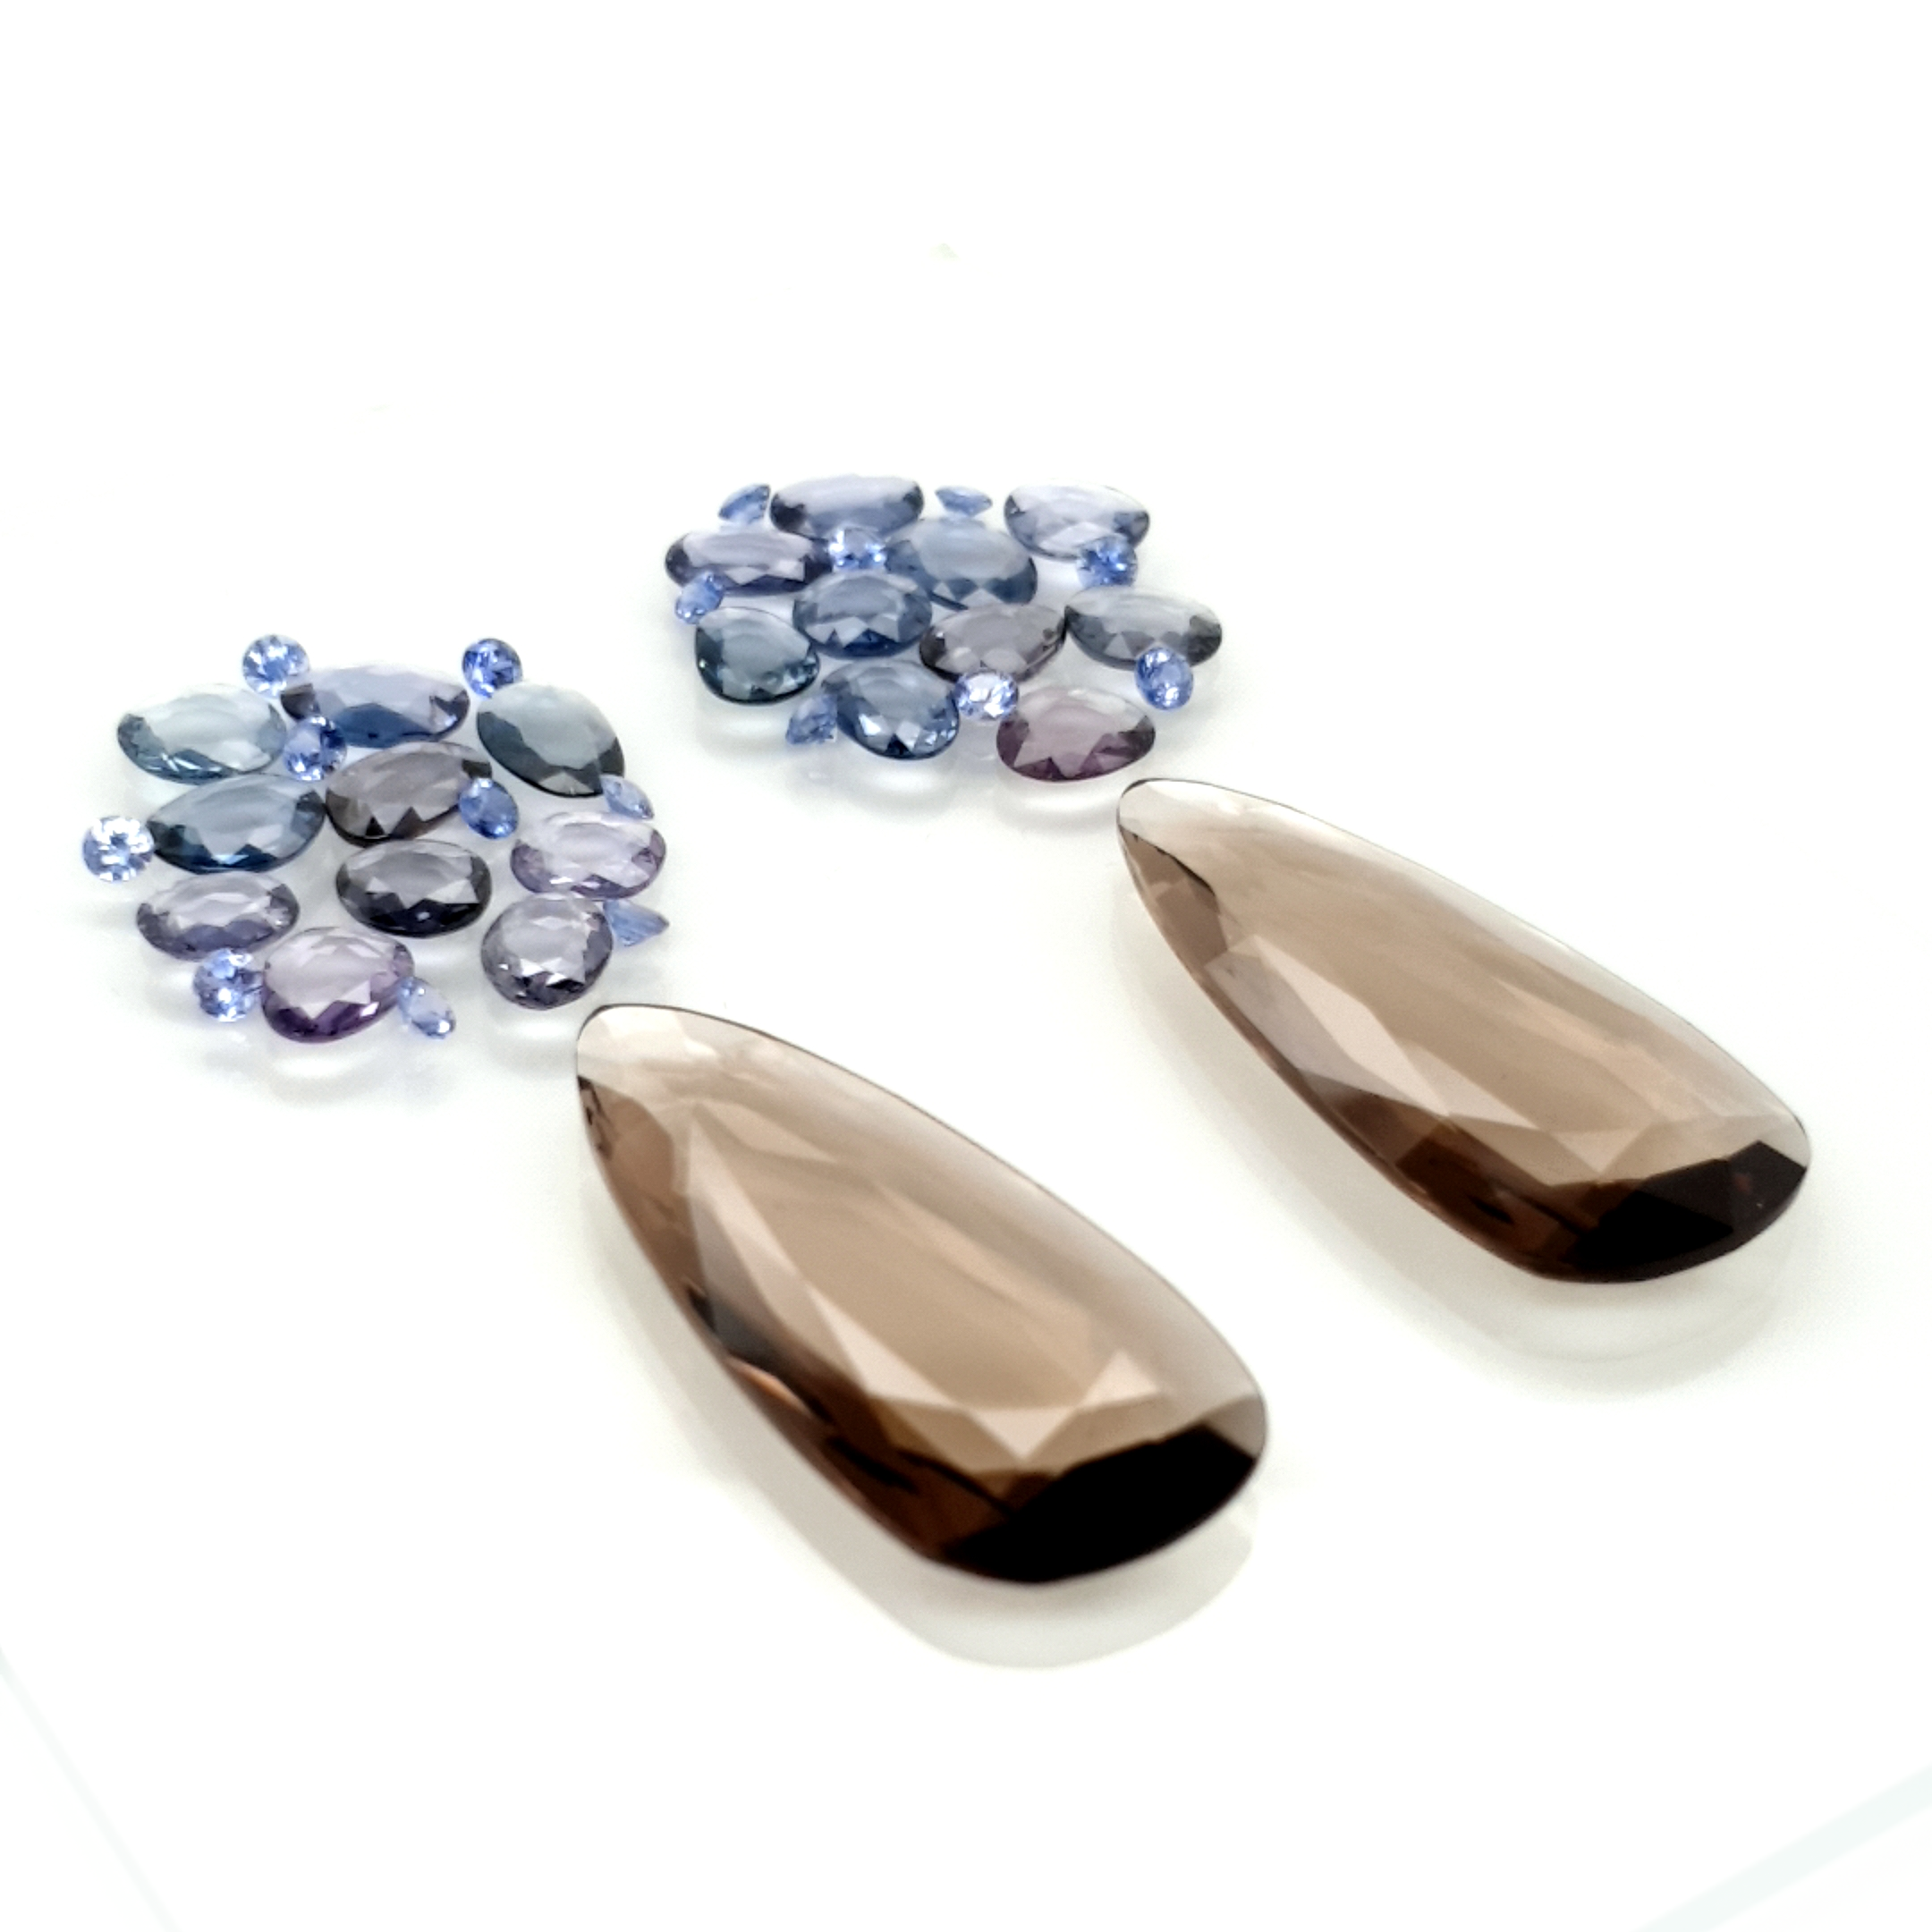 Set for earrings 43,40ct. Blue Spinel, Sapphire and Smoky Quartz ClaudiaHamann__2021-03-24-23-15-06